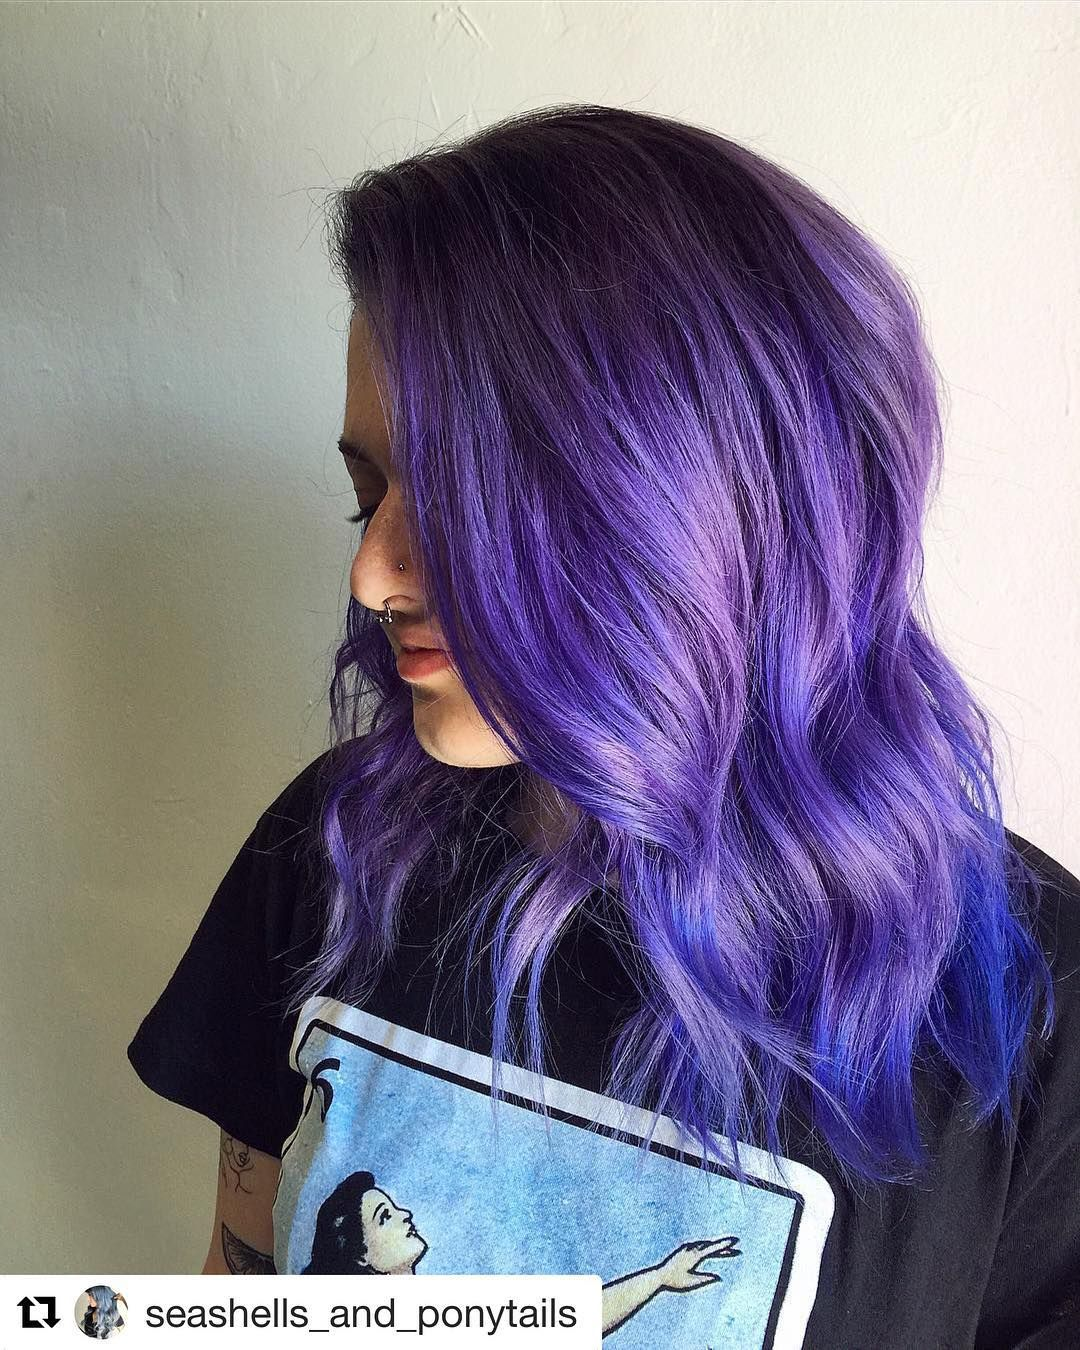 Try Mixing Purple Rain And Aquamarine For A Cobalt Blue Bellazzasalon Seashells And Ponytails Ask For Alexis At Creative Hair Color Fox Hair Dye Hair